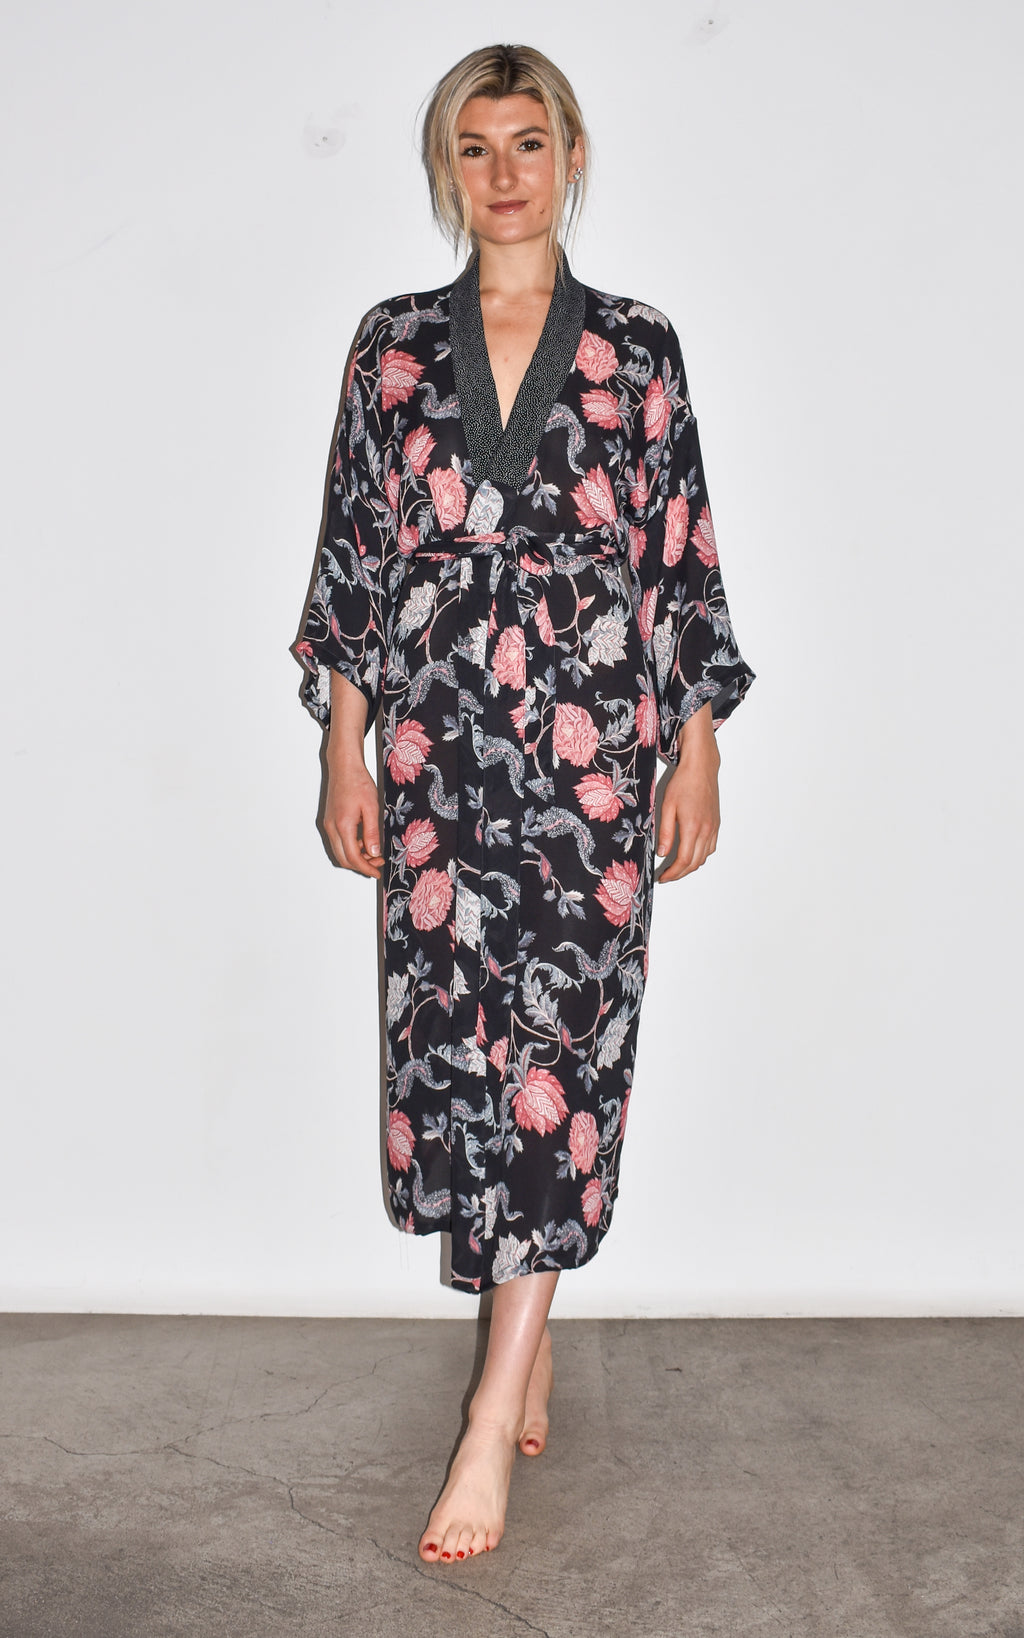 Sexy silk kimono, robe, beach cover up. Floral. Handmade in Venice. Female owned small business